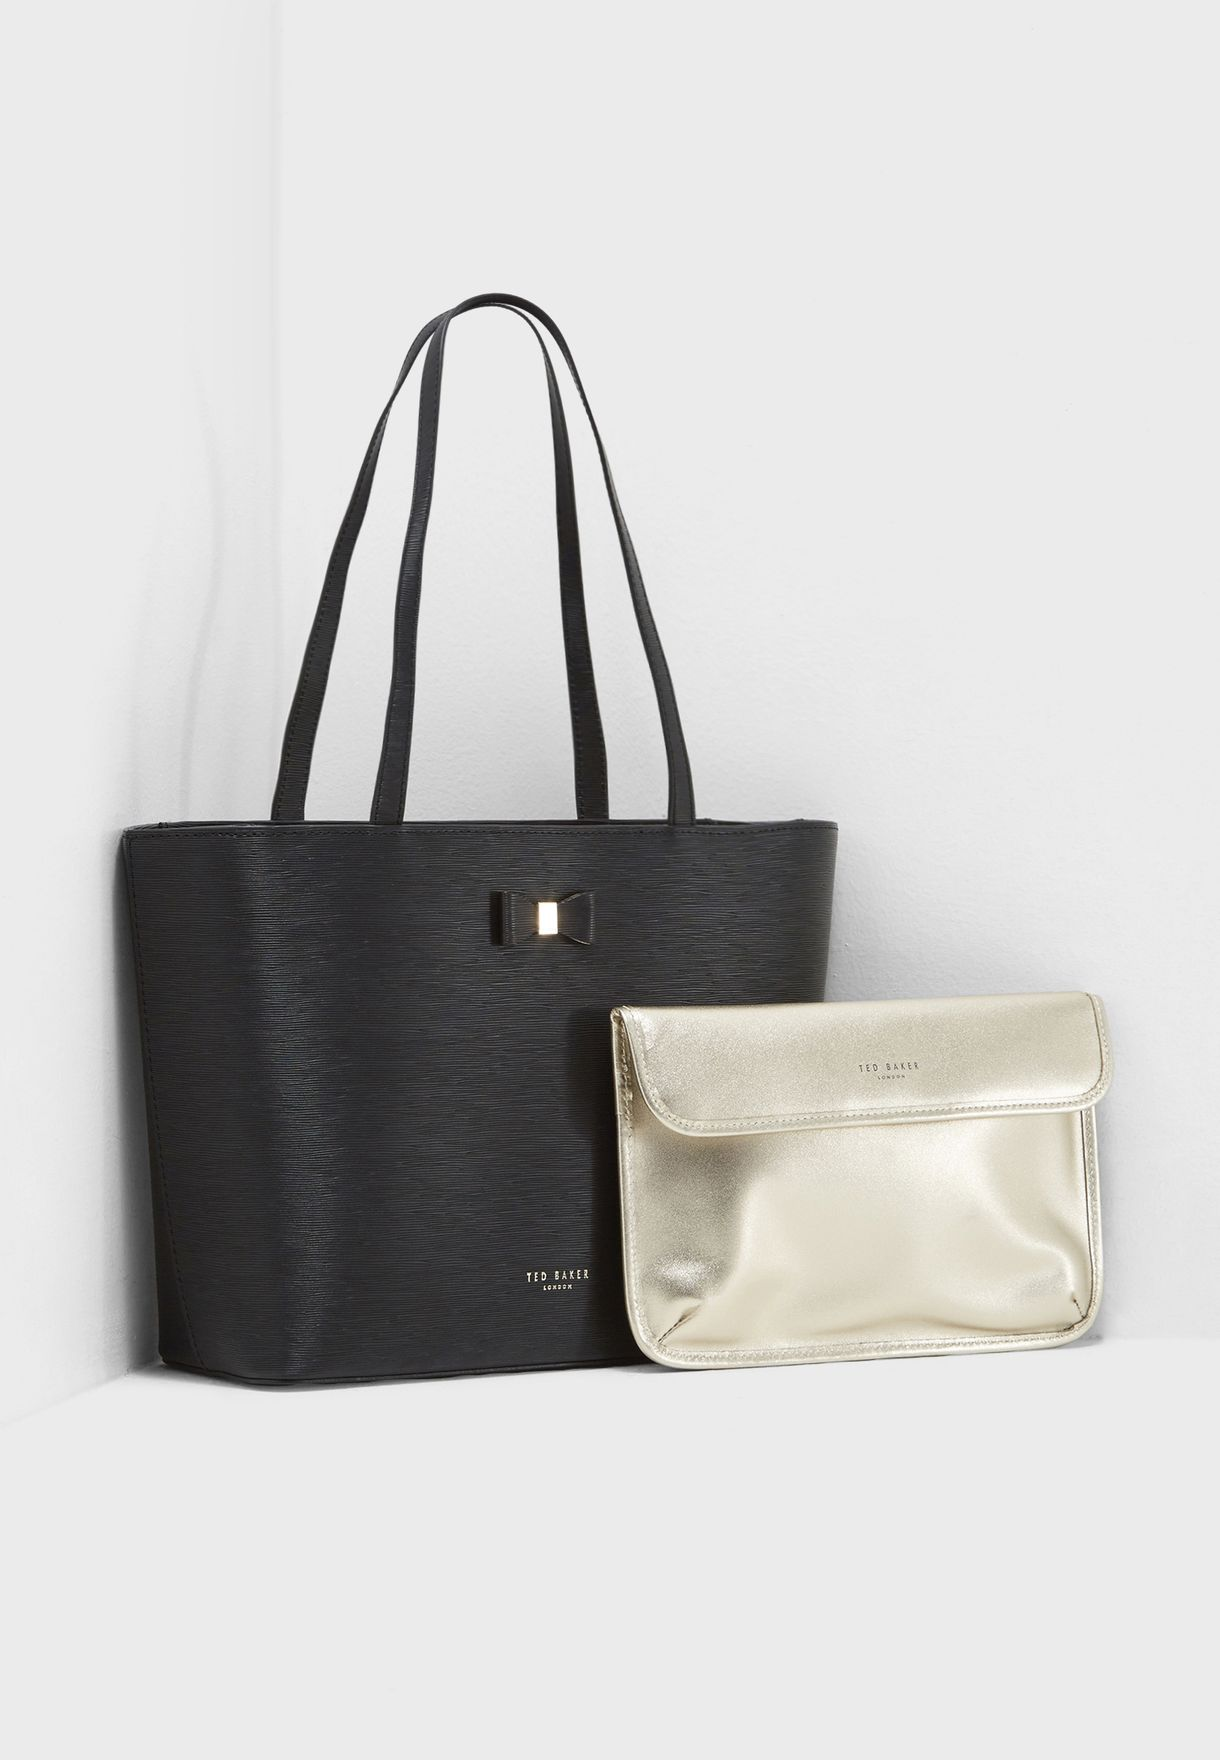 f2194af55 Shop Ted baker black Deanie Bow Detail Small Leather Shopper 147438 for  Women in UAE - TE456AC86JSN